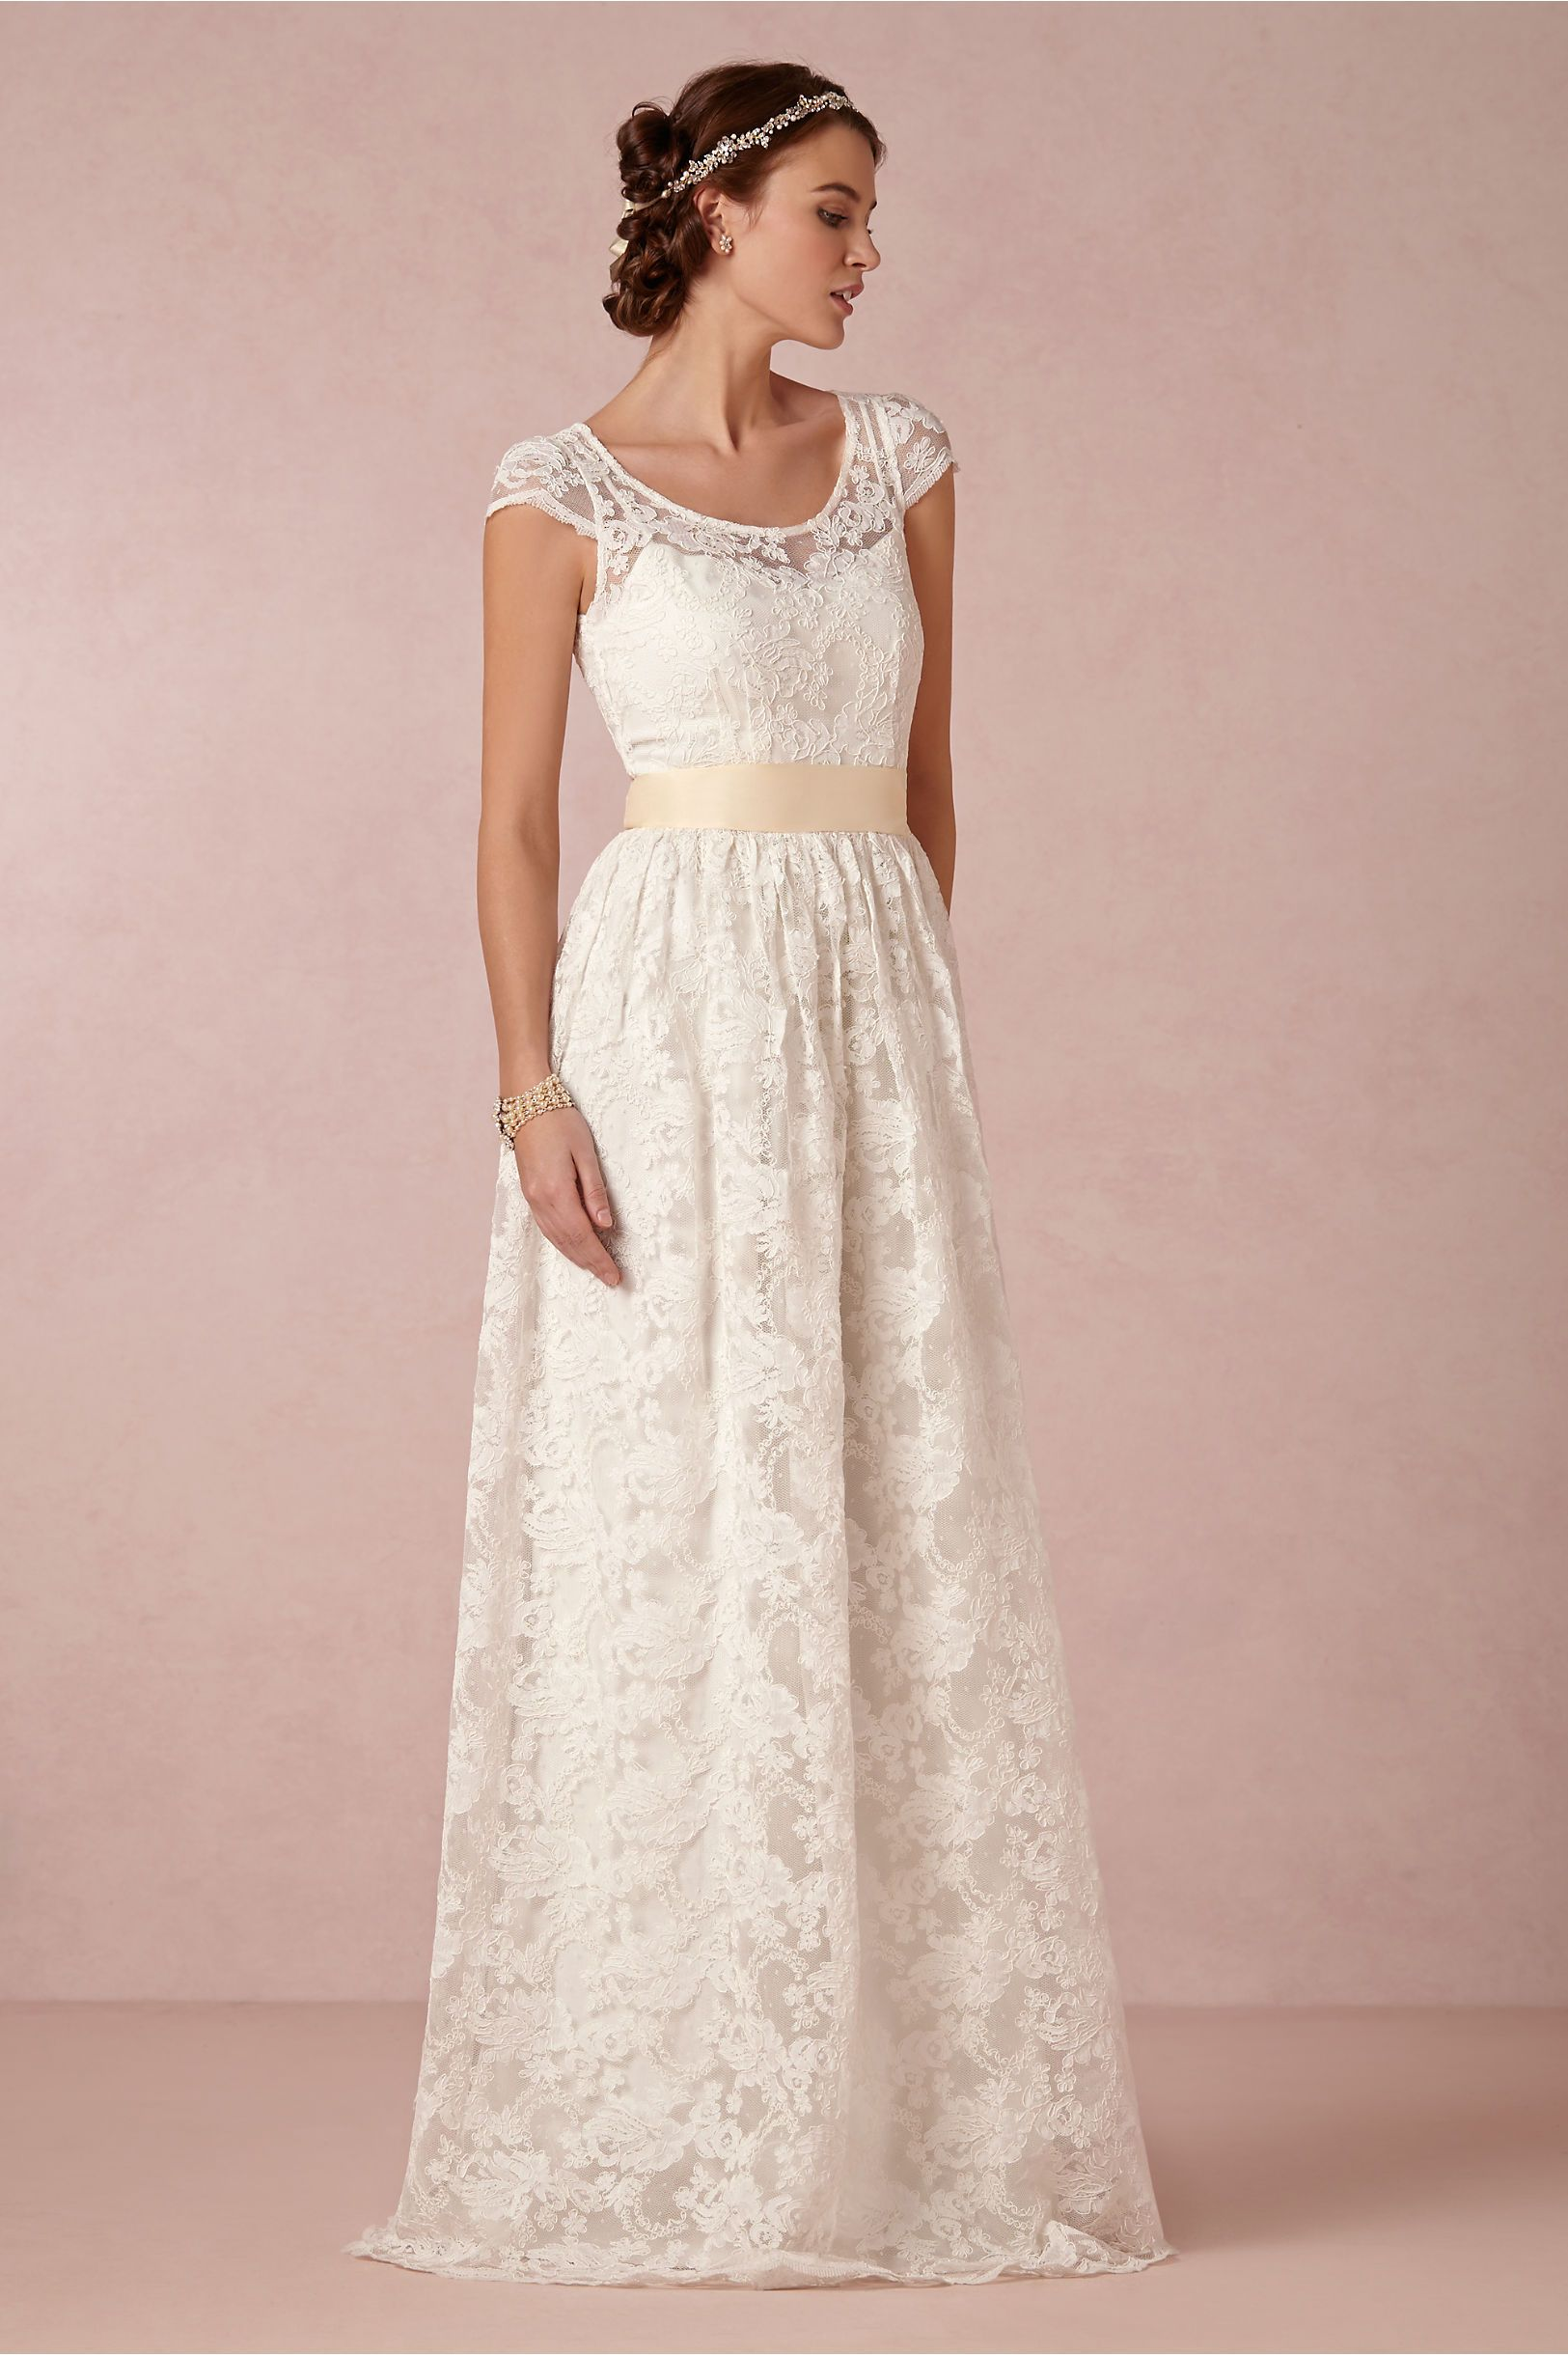 Ellie Gown in Bride Wedding Dresses Lace at BHLDN. $1395. http://www ...